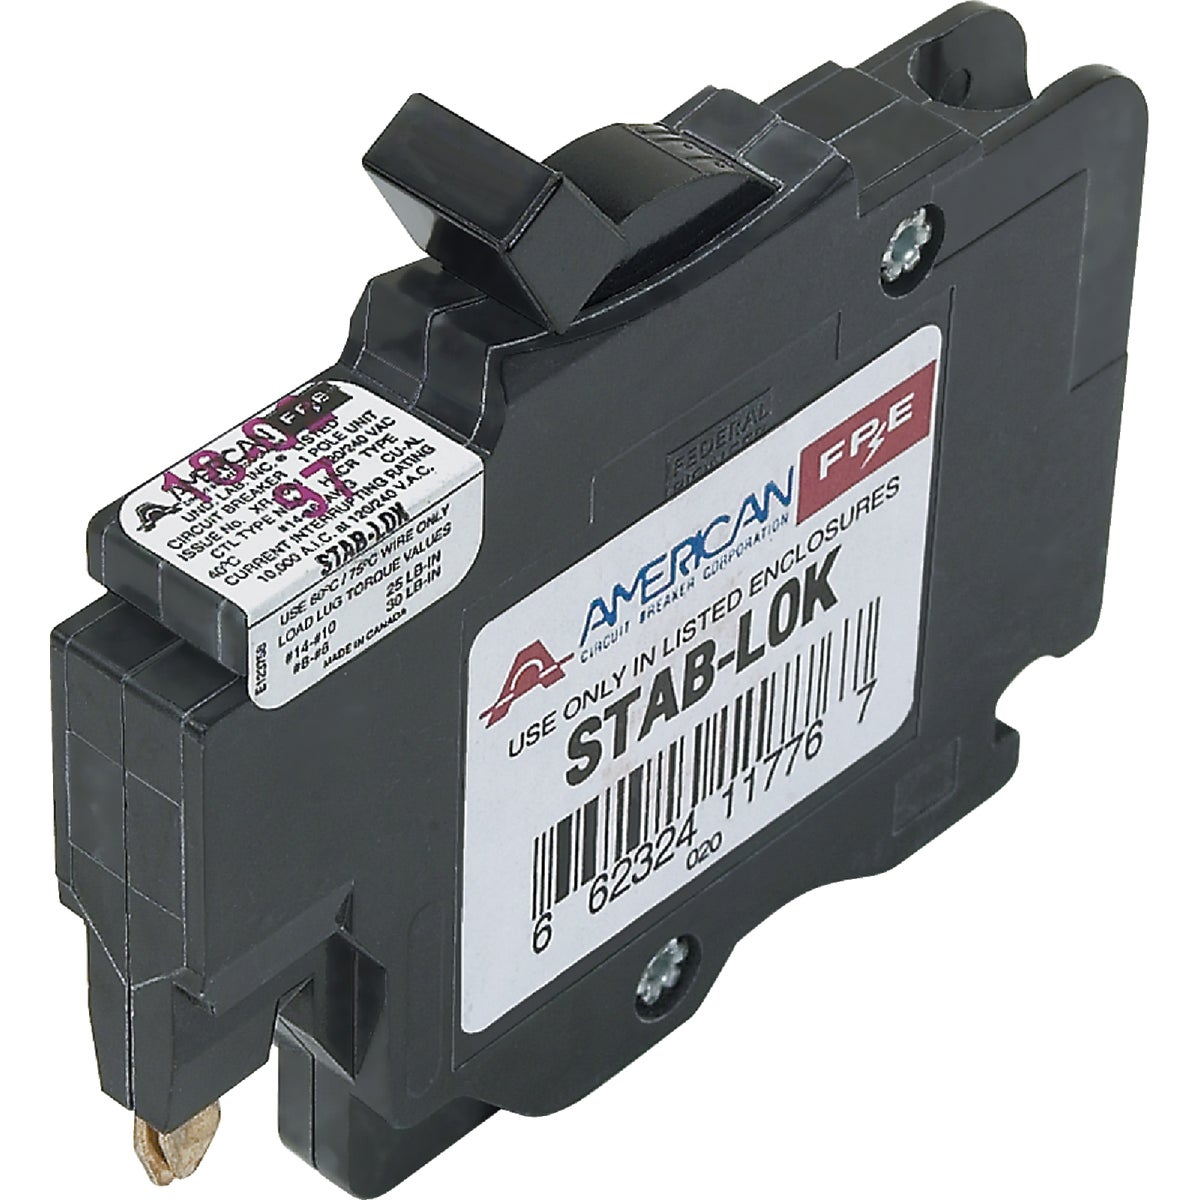 30A SP CIRCUIT BREAKER - UBIF030N by Connecticut Electric